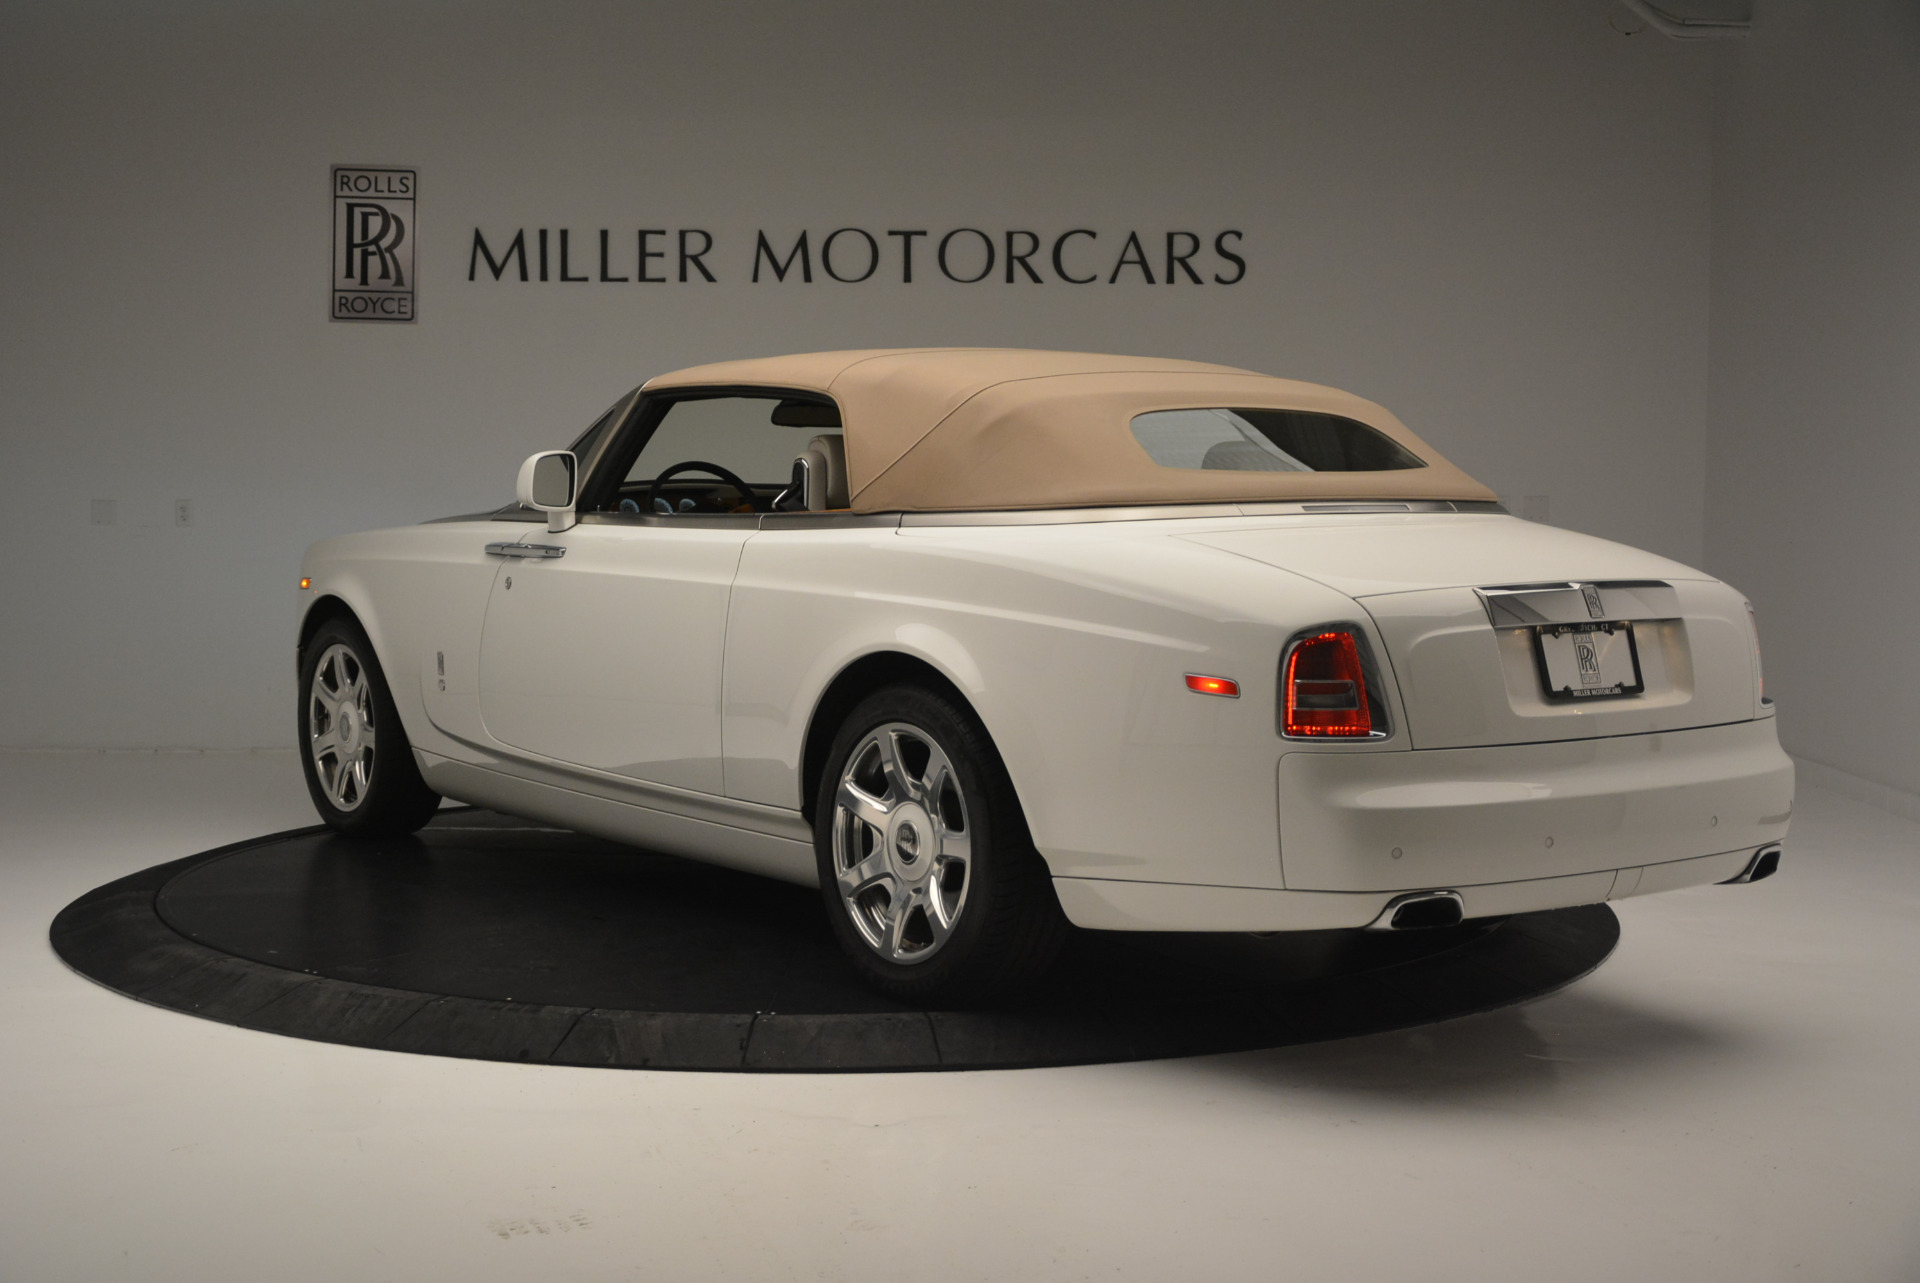 Used 2013 Rolls-Royce Phantom Drophead Coupe  For Sale In Greenwich, CT 2444_p11